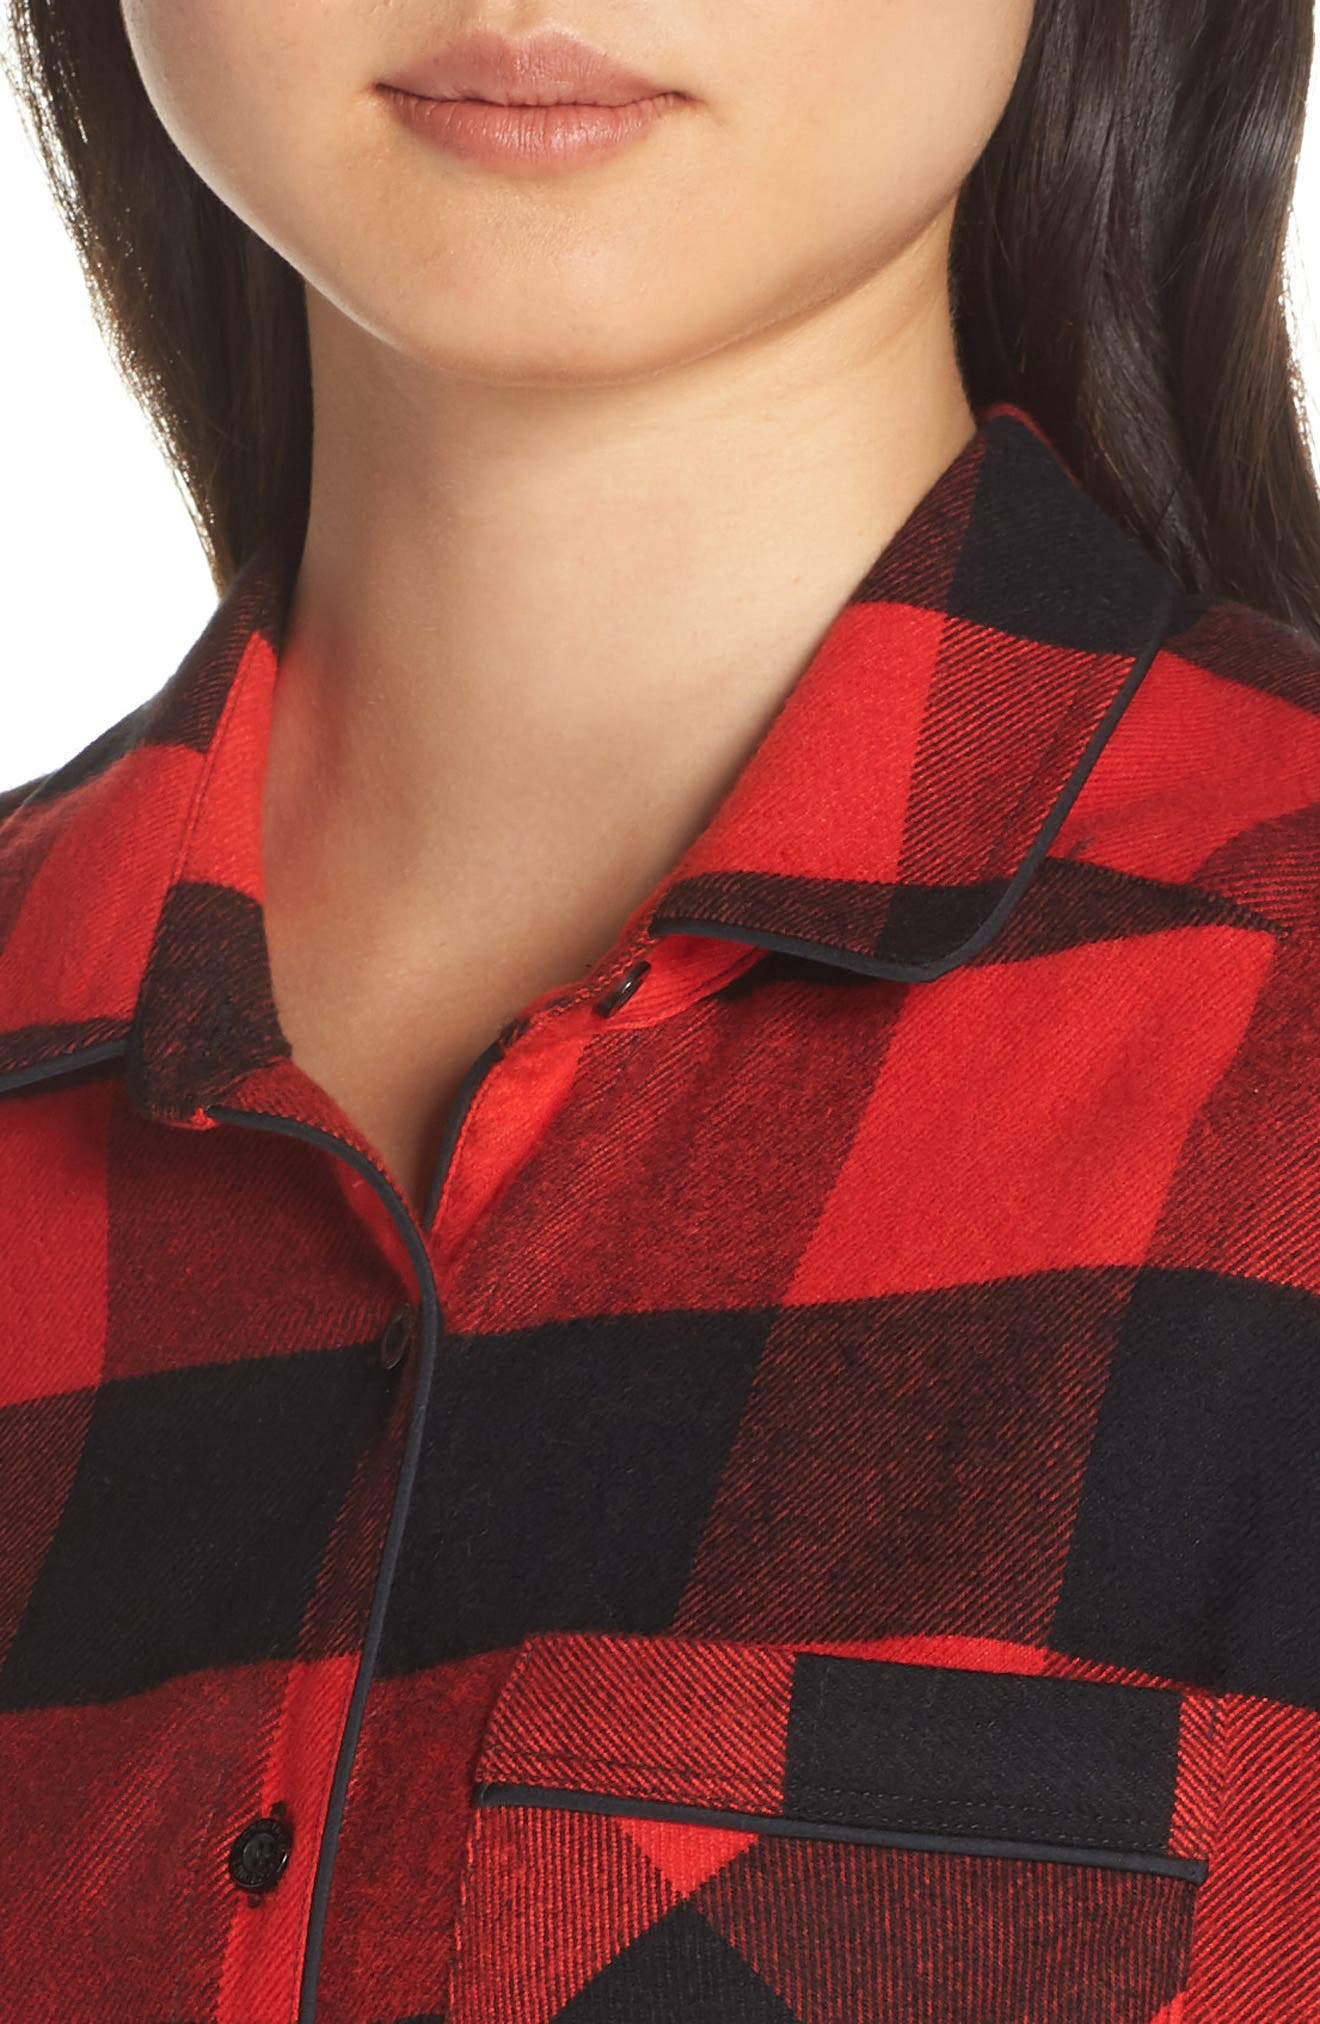 Flannel Nightshirt,                             Alternate thumbnail 4, color,                             RED BLOOM LARGE BUFFALO CHECK